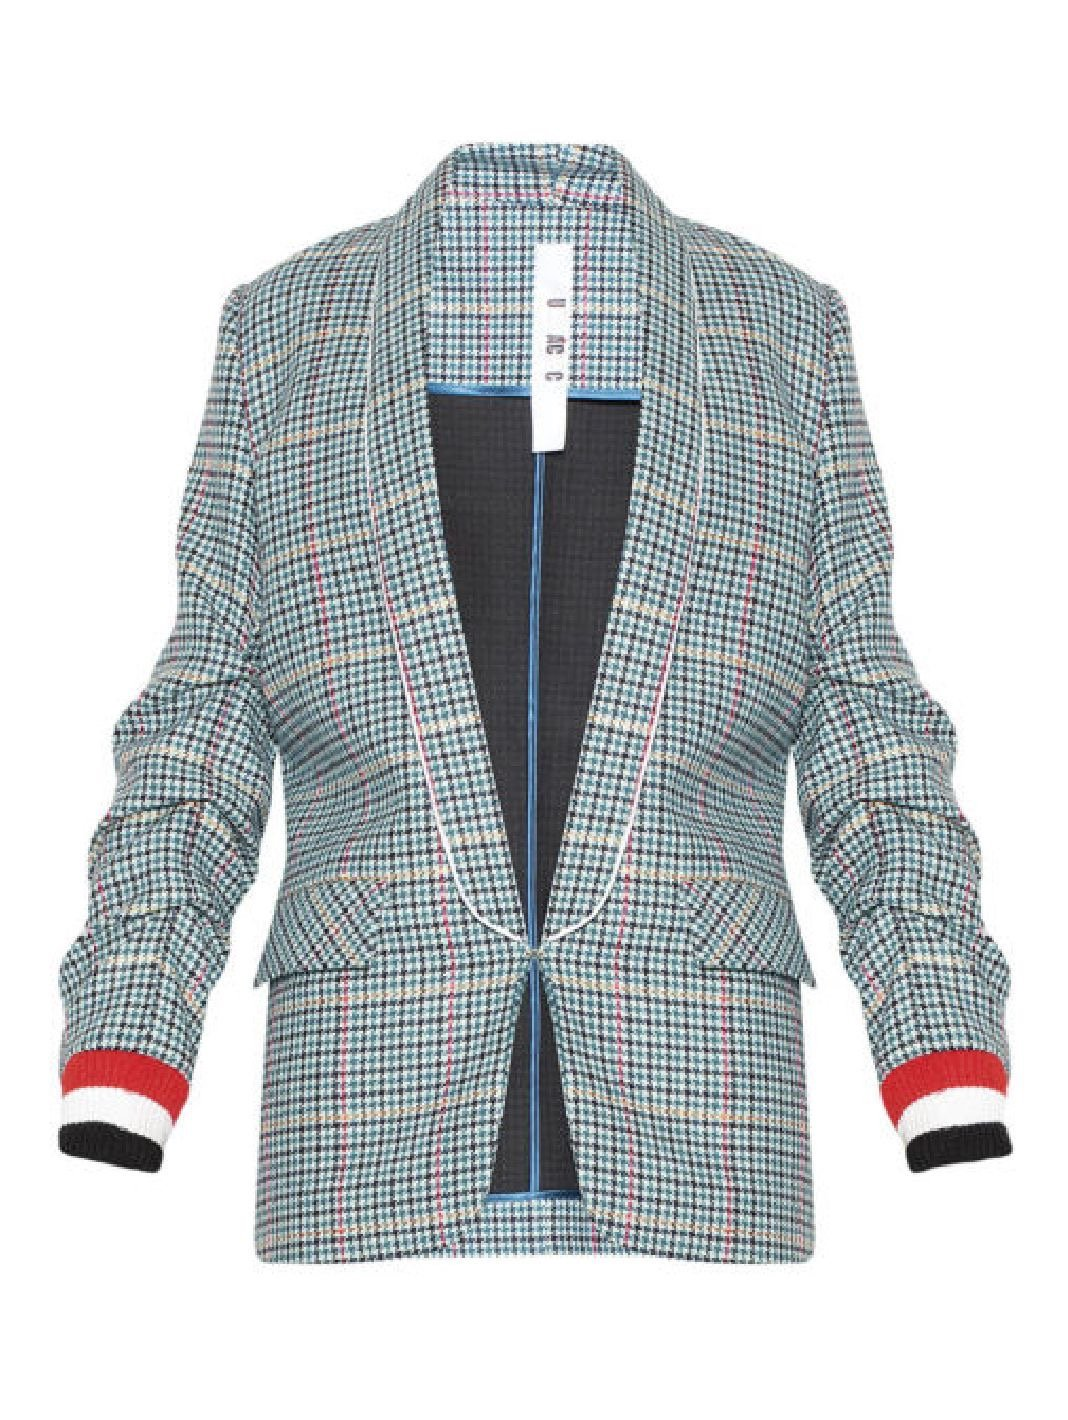 Sea Check Blazer - The Bobby Boga